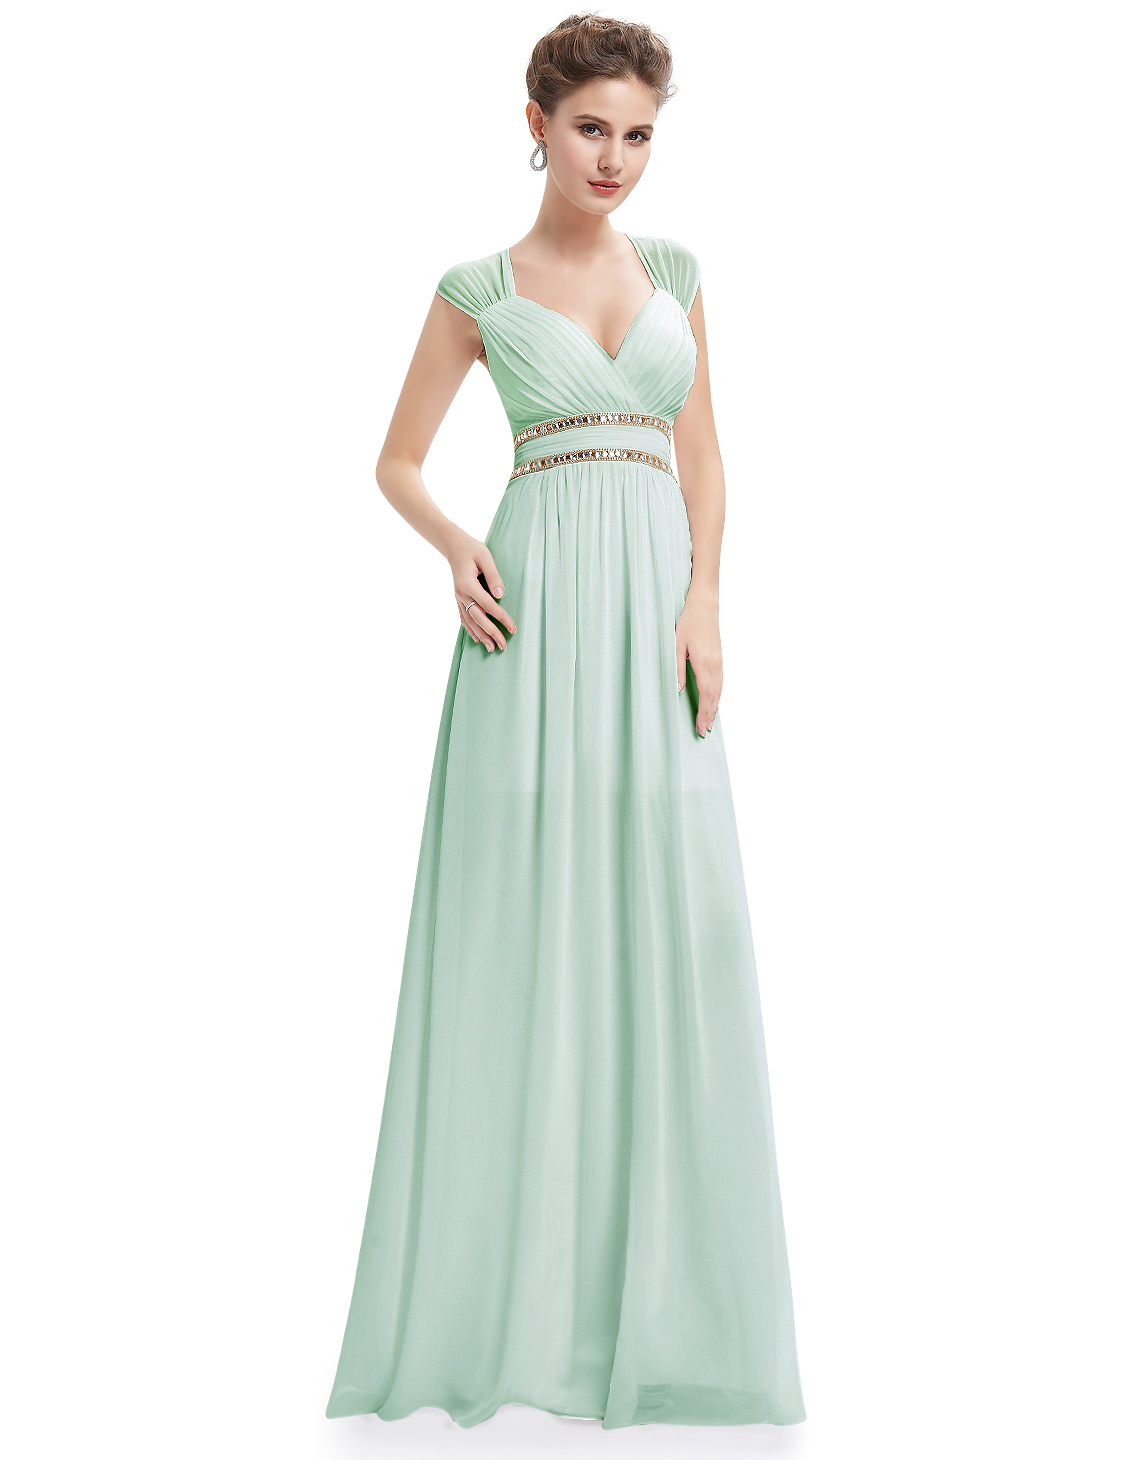 Women\'s Long Cap Sleeve A-line Bridesmaid Dresses Evening Party Prom ...